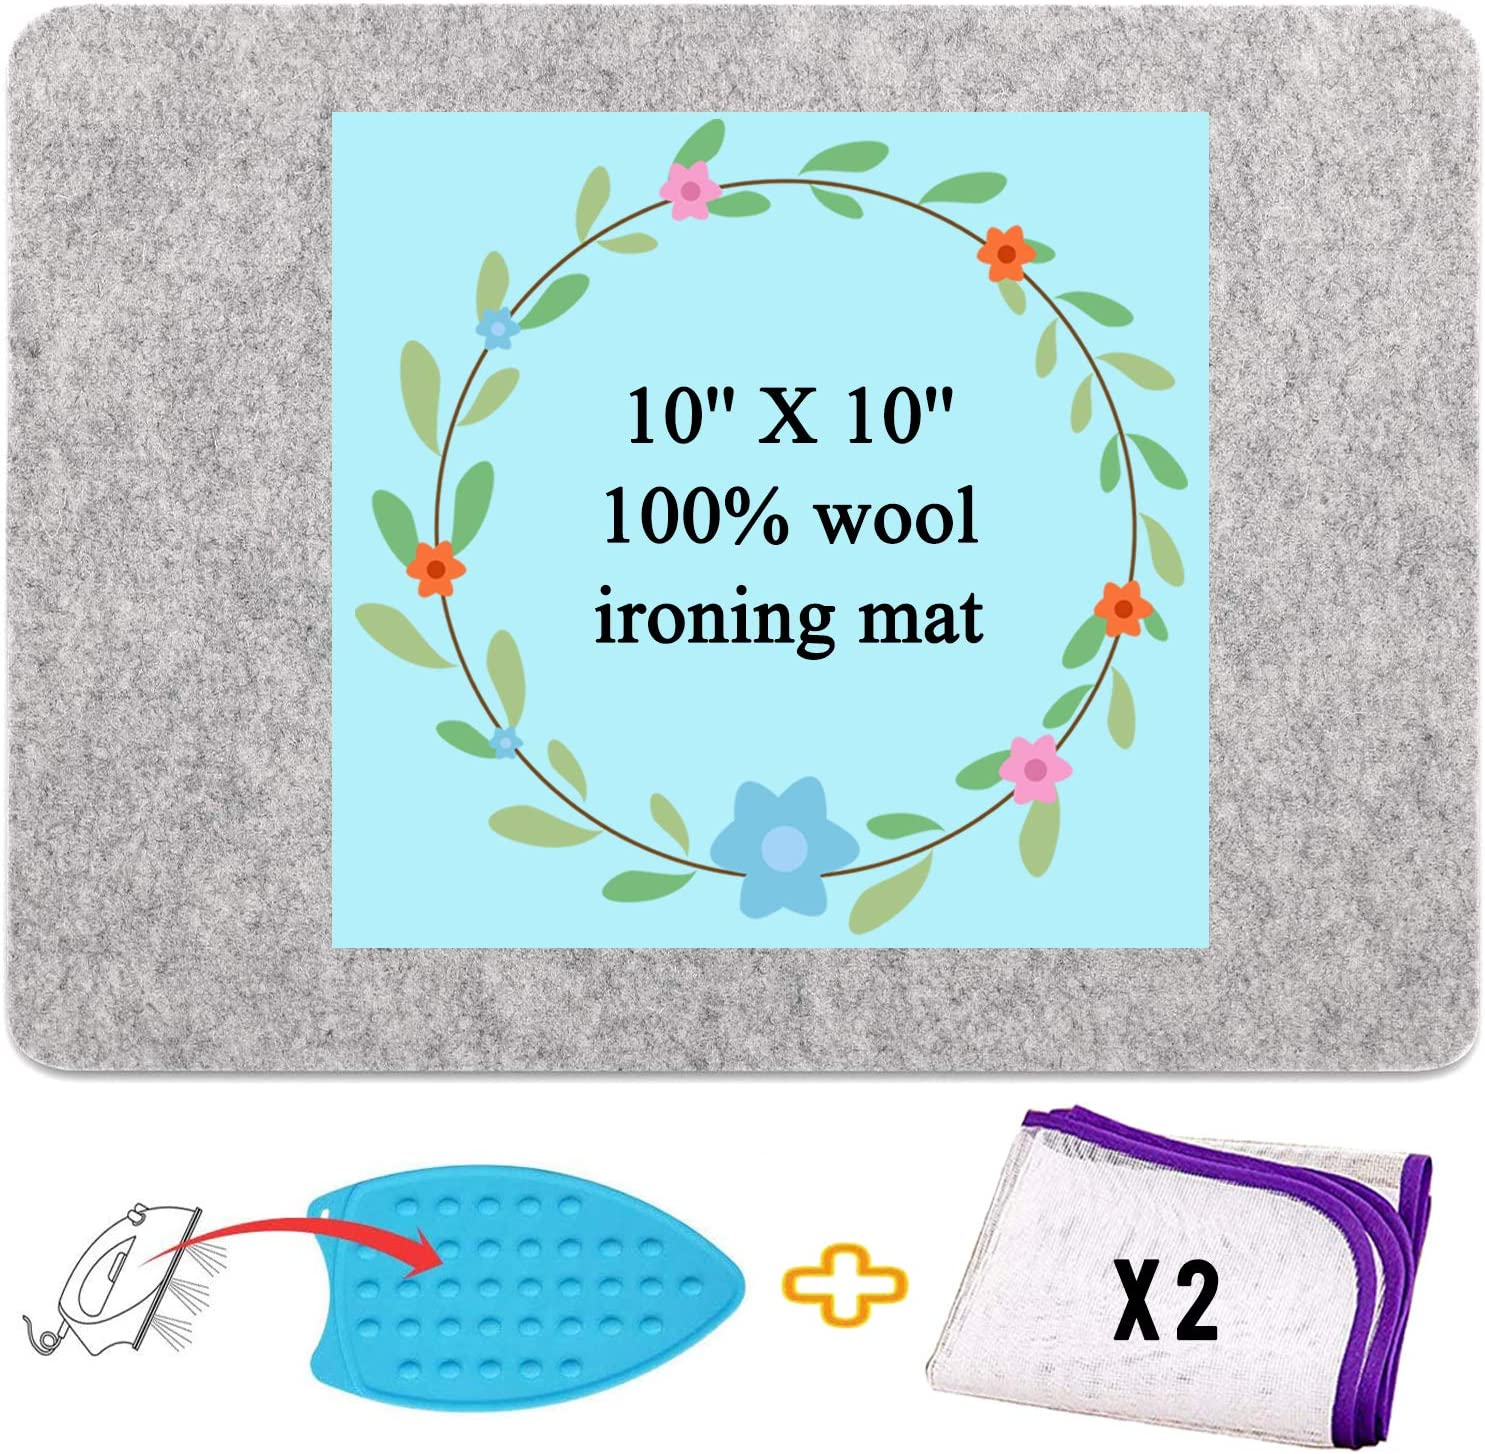 Wool Pressing Mat for Max 74% OFF shipfree Smal Quilting 10